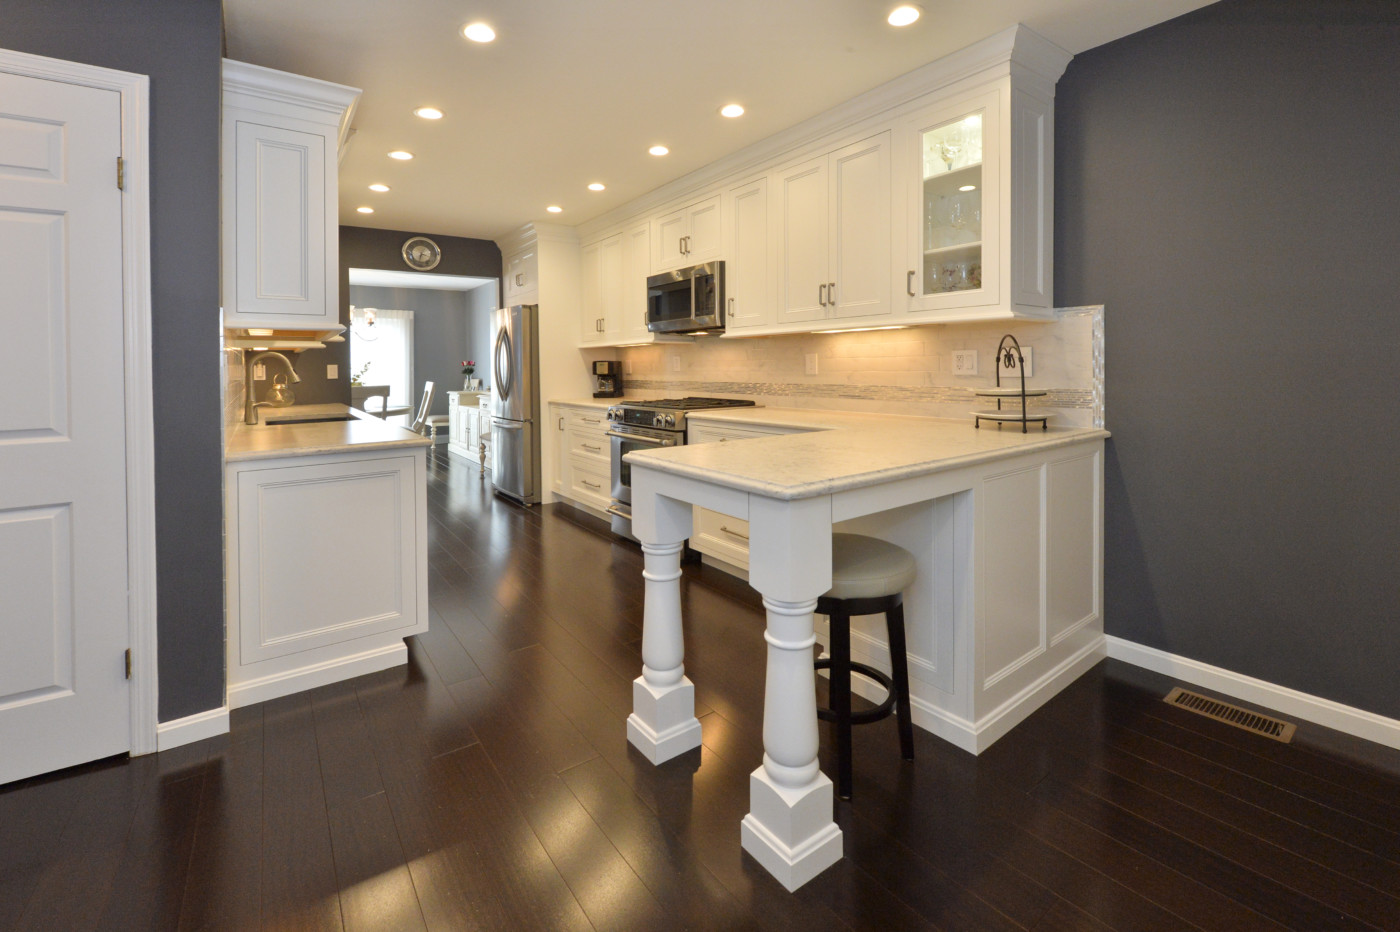 Kuiken Brothers Kitchen Cabinetry Project In Hunterdon County, New Jersey    Kuiken Brothers